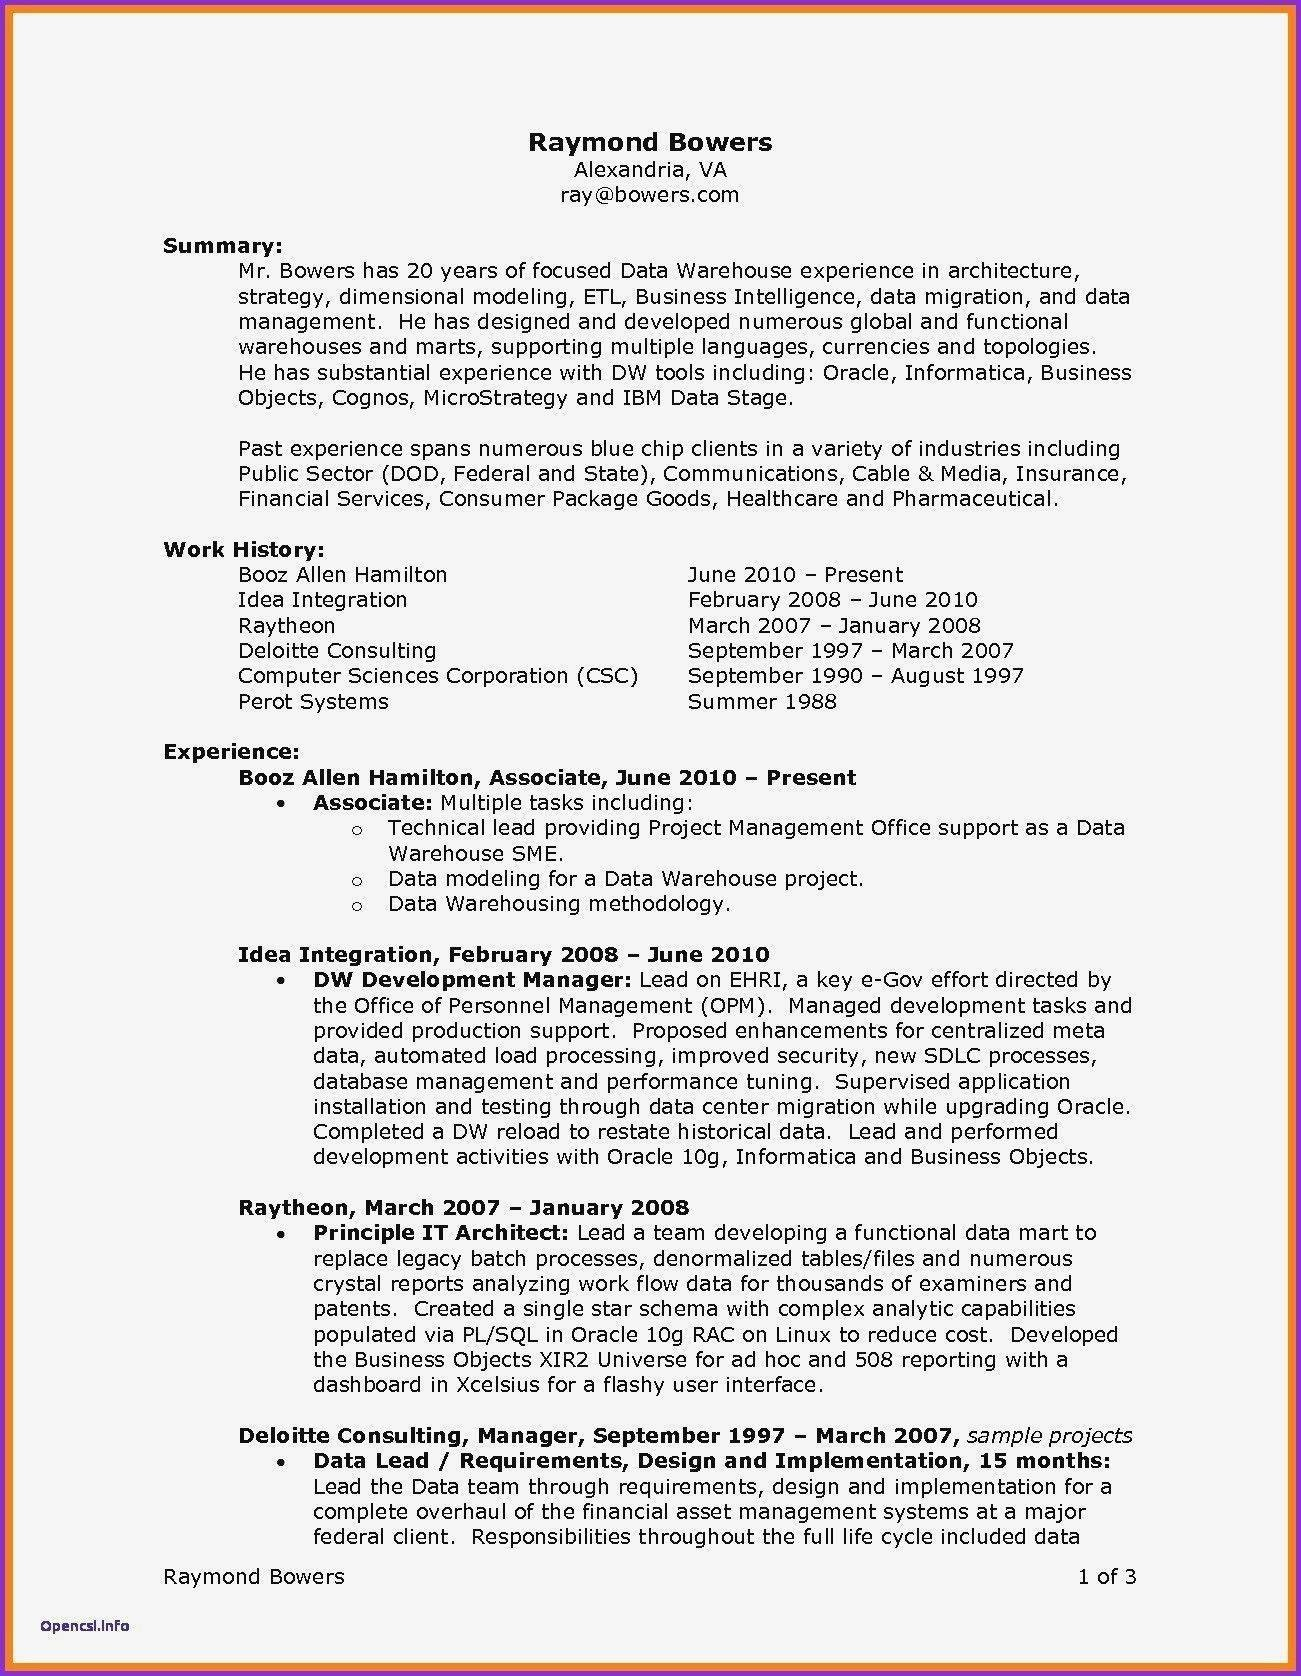 Business Report Format Template Valid Business Requirements Template For Data Warehouse Business Requirements Template